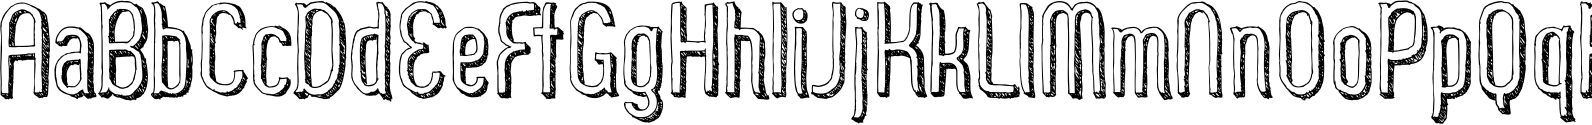 Zoo 300 Sketch Shadow Font